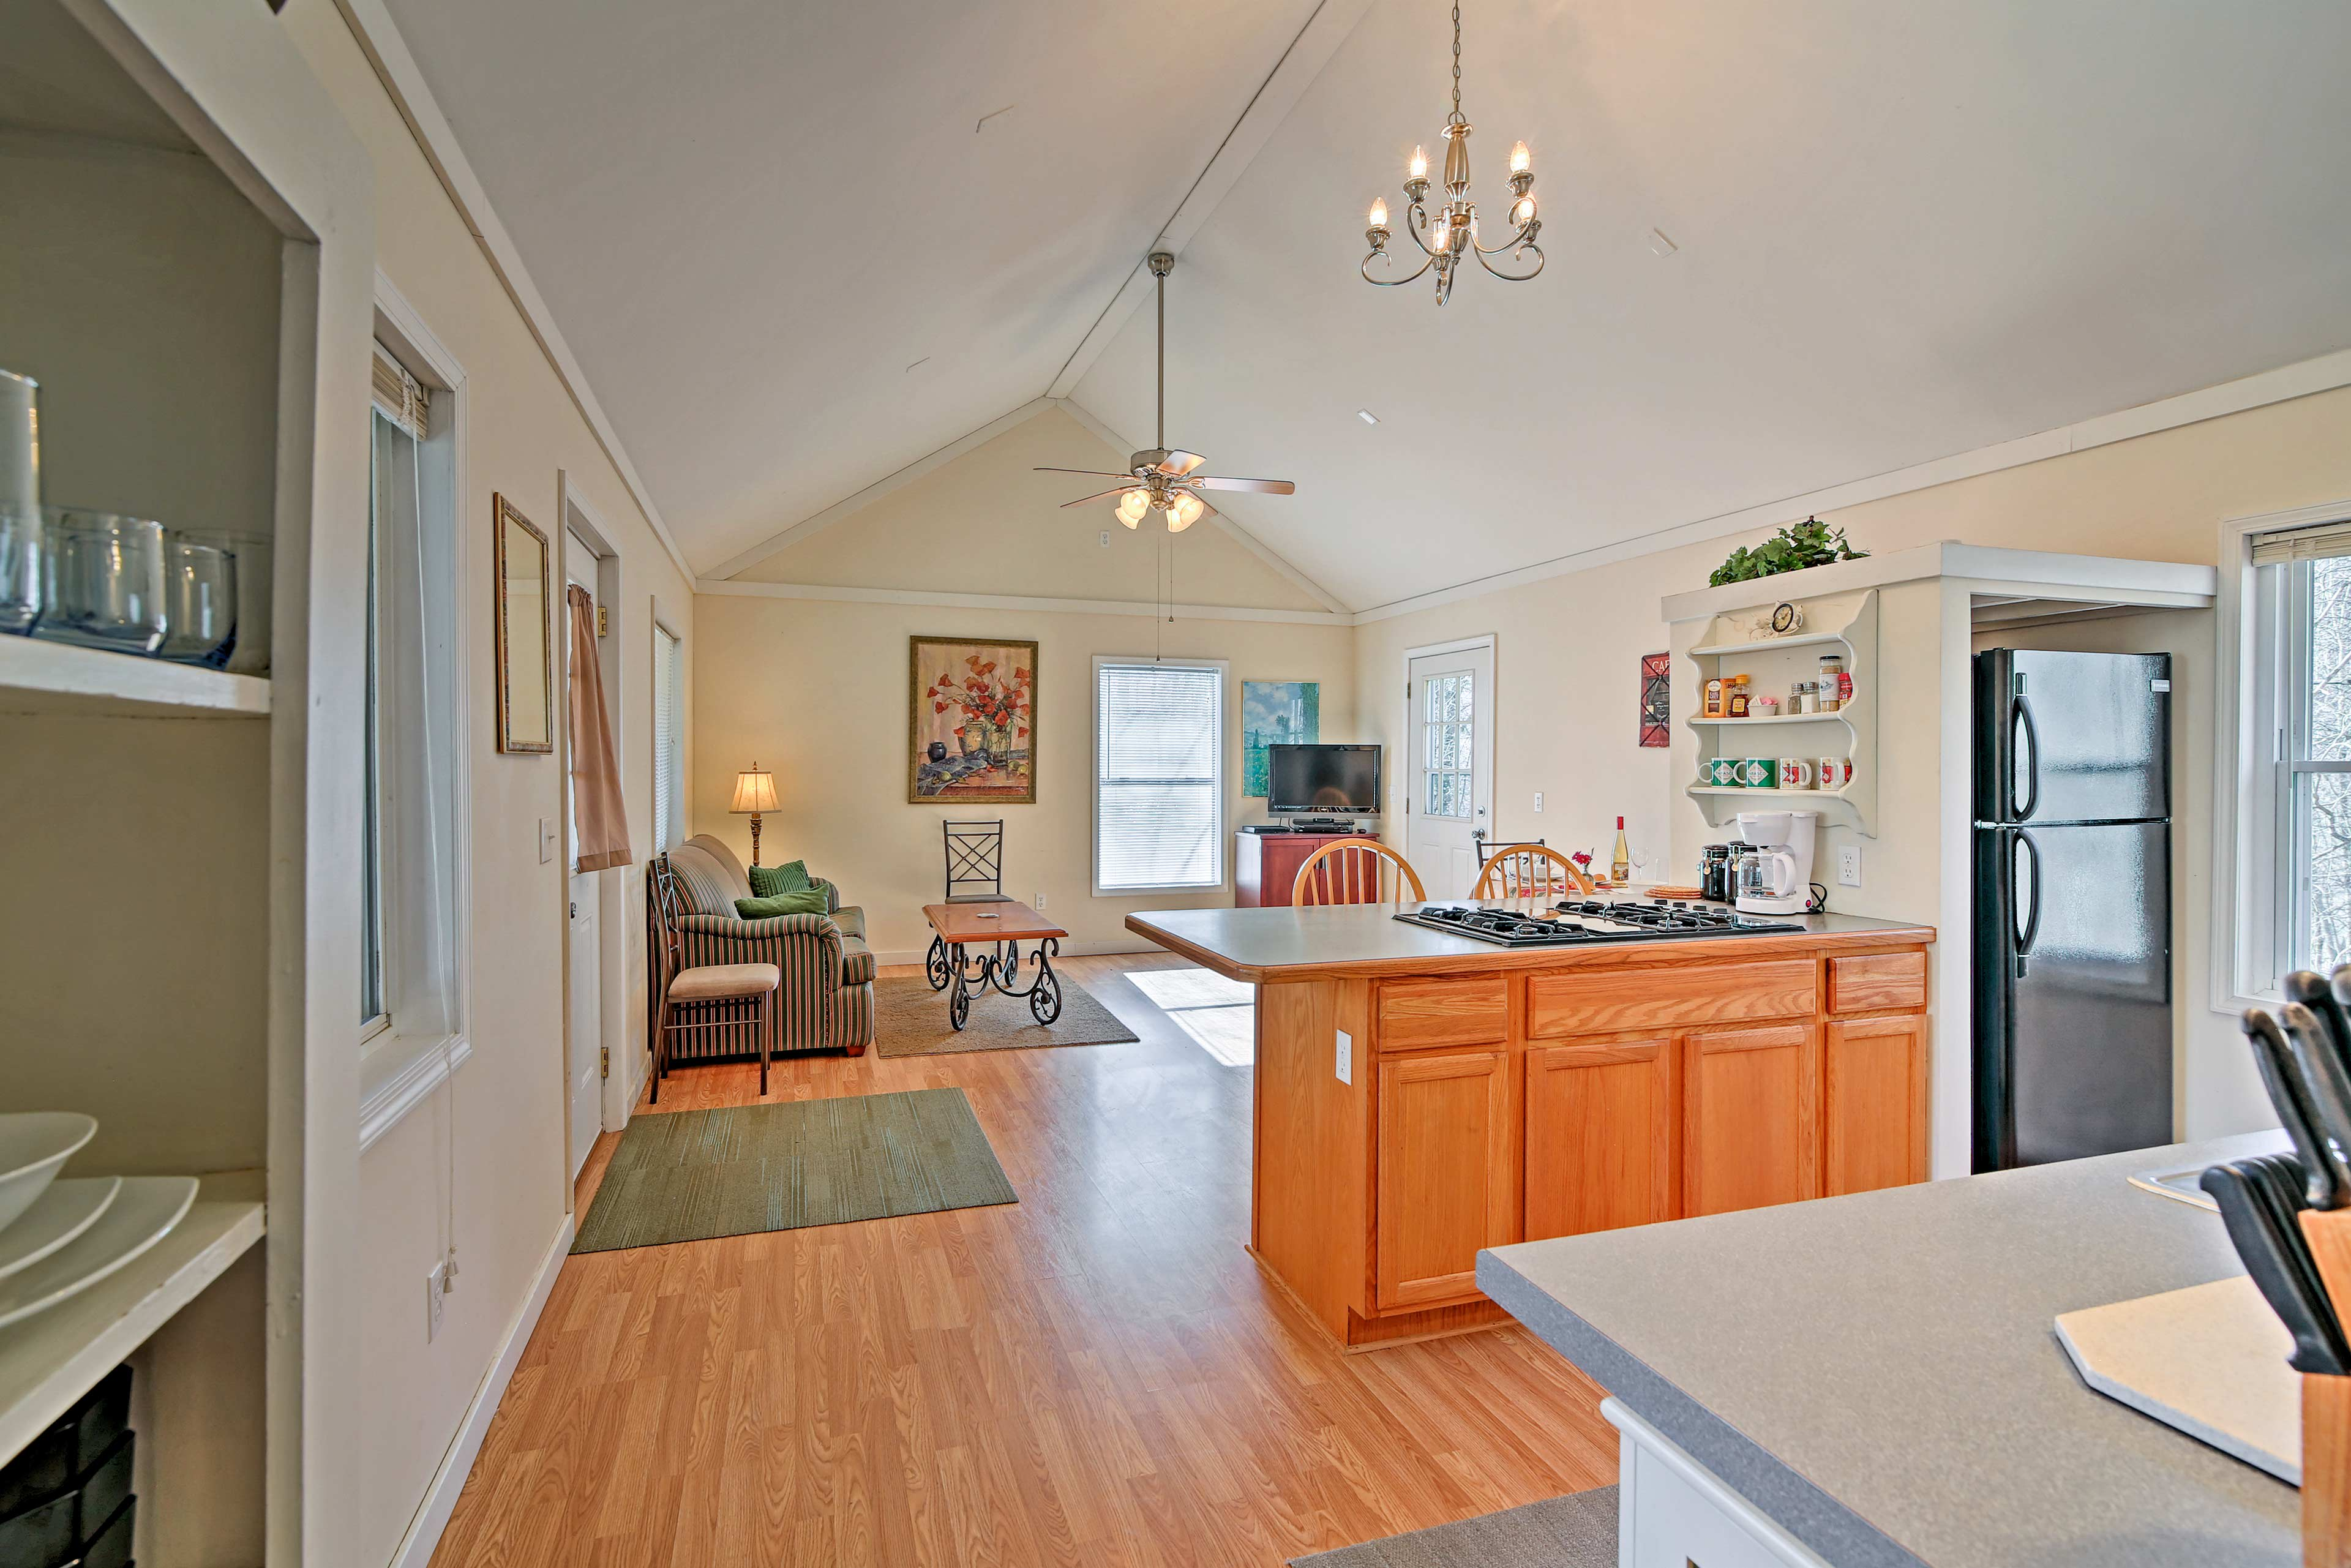 Hardwood floors line the interior of the home.